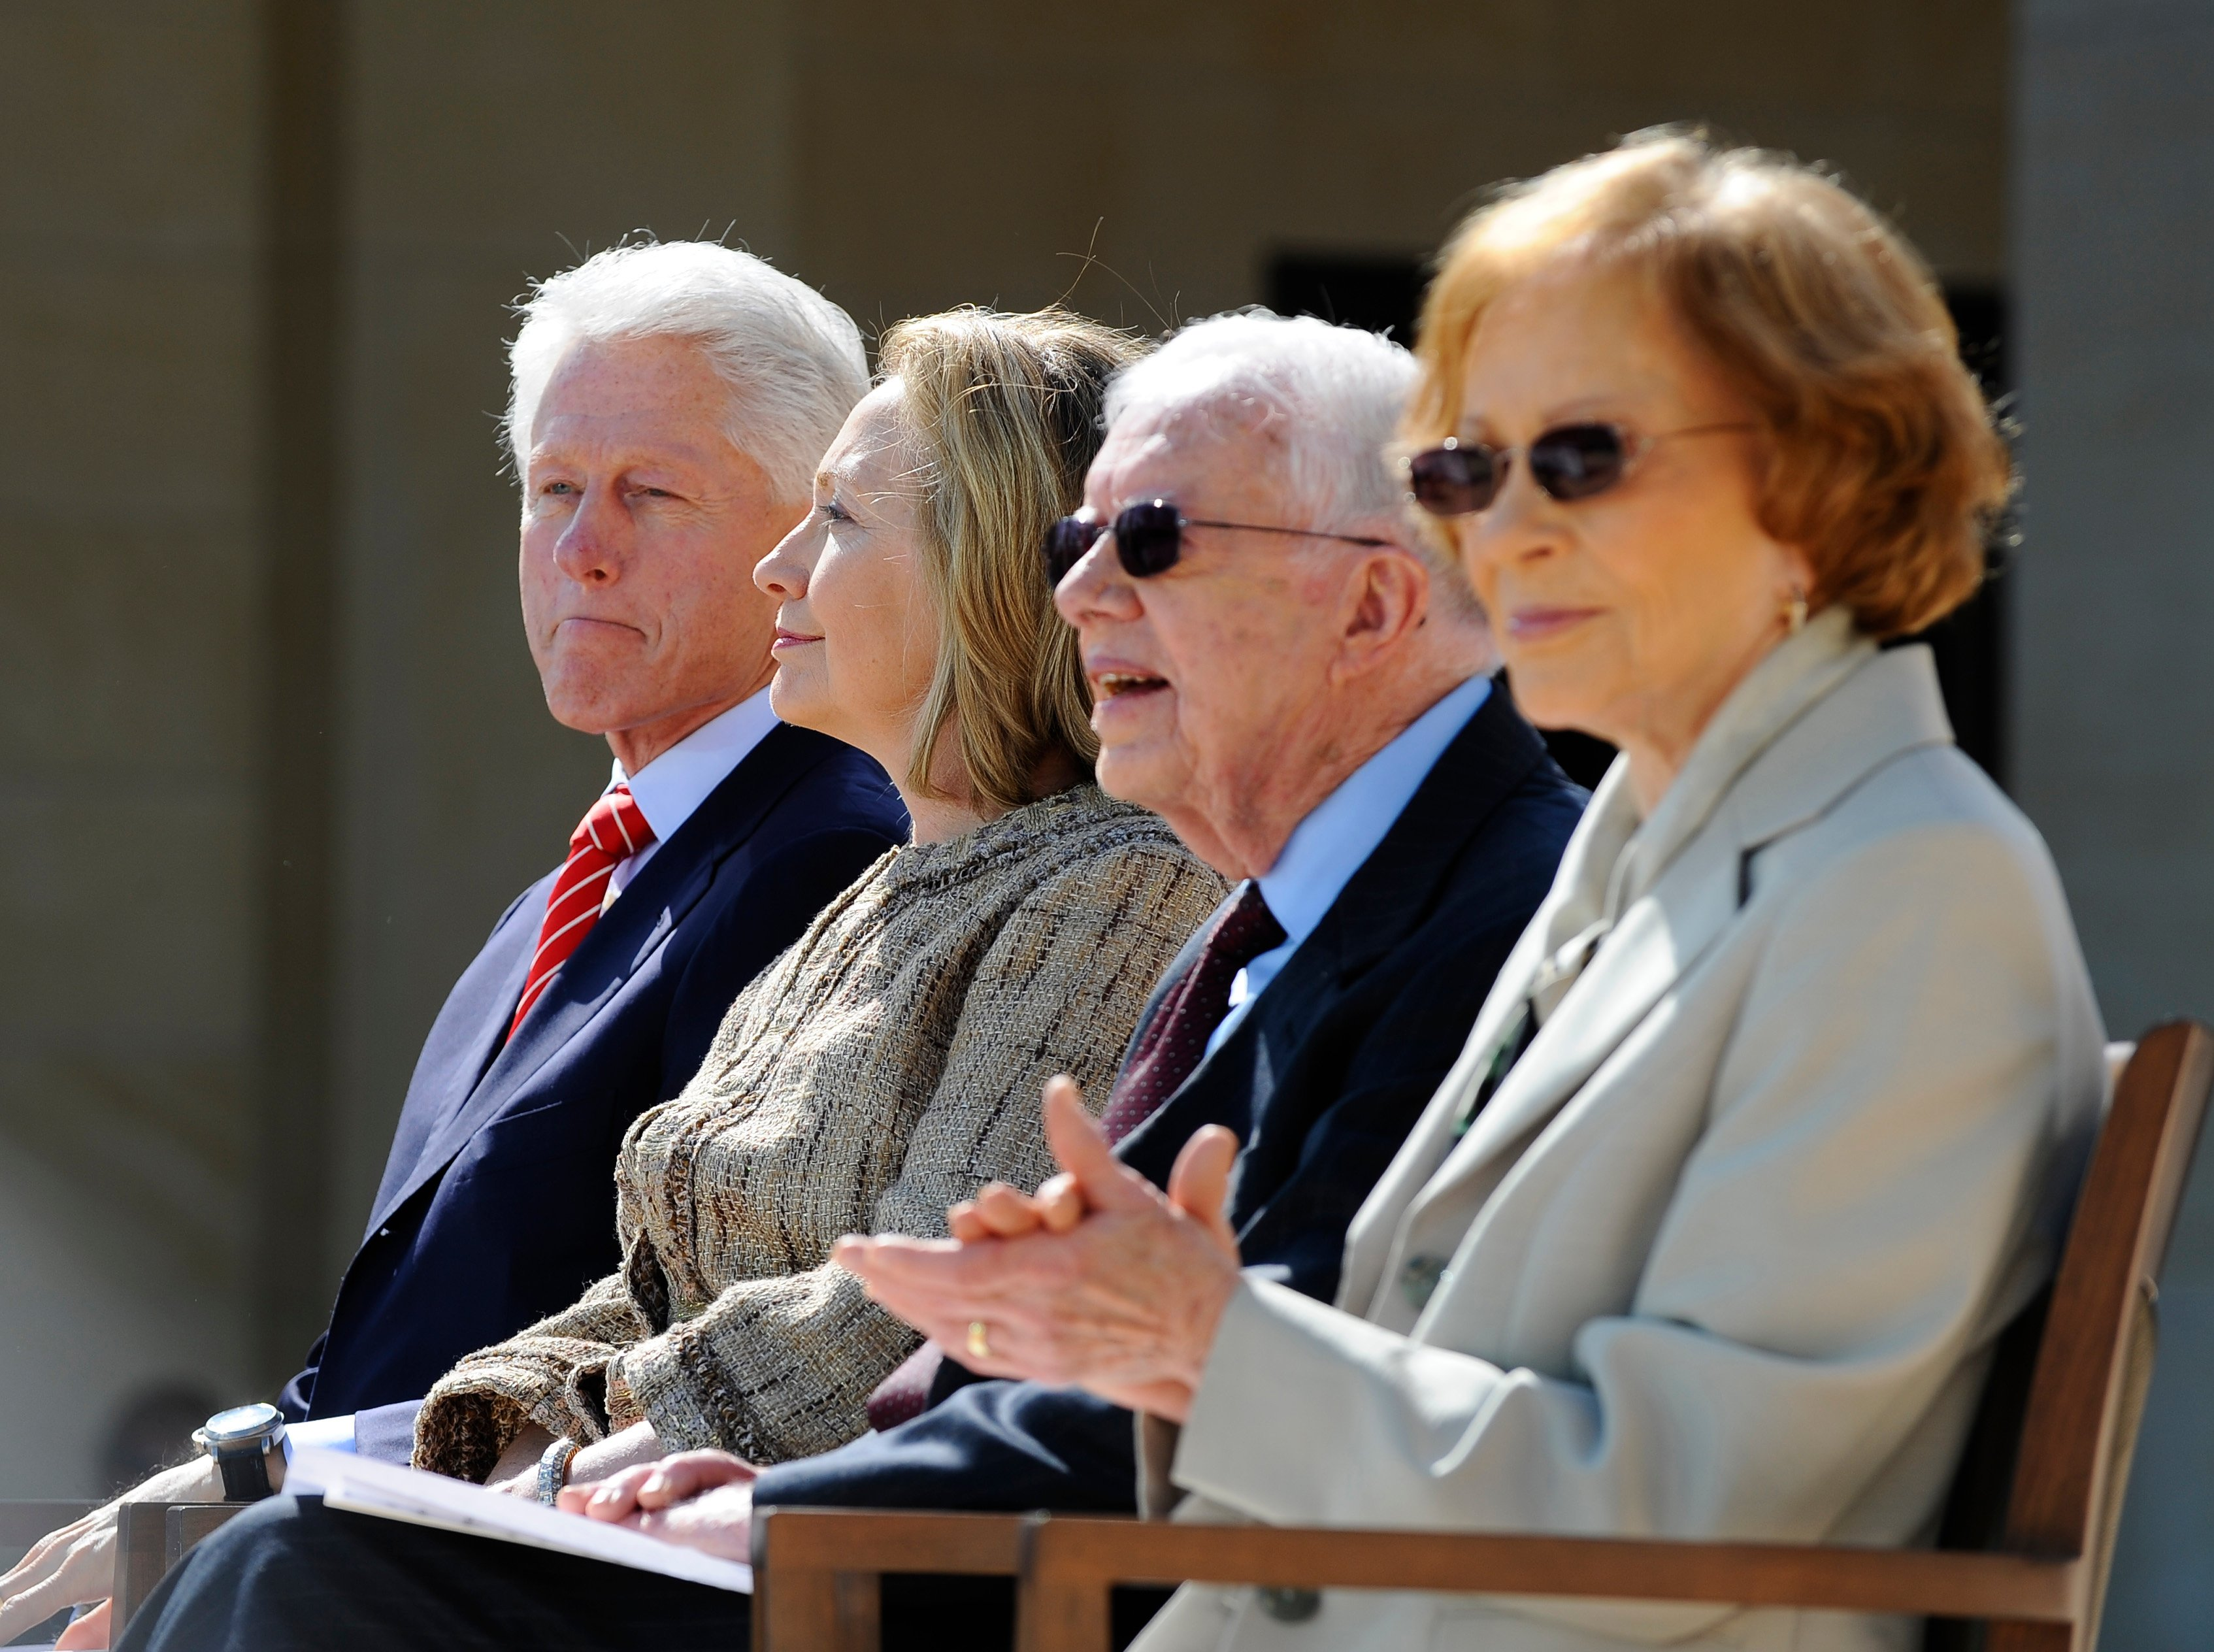 Opening Ceremony for the George W. Bush Presidential Library in Dallas, Texas